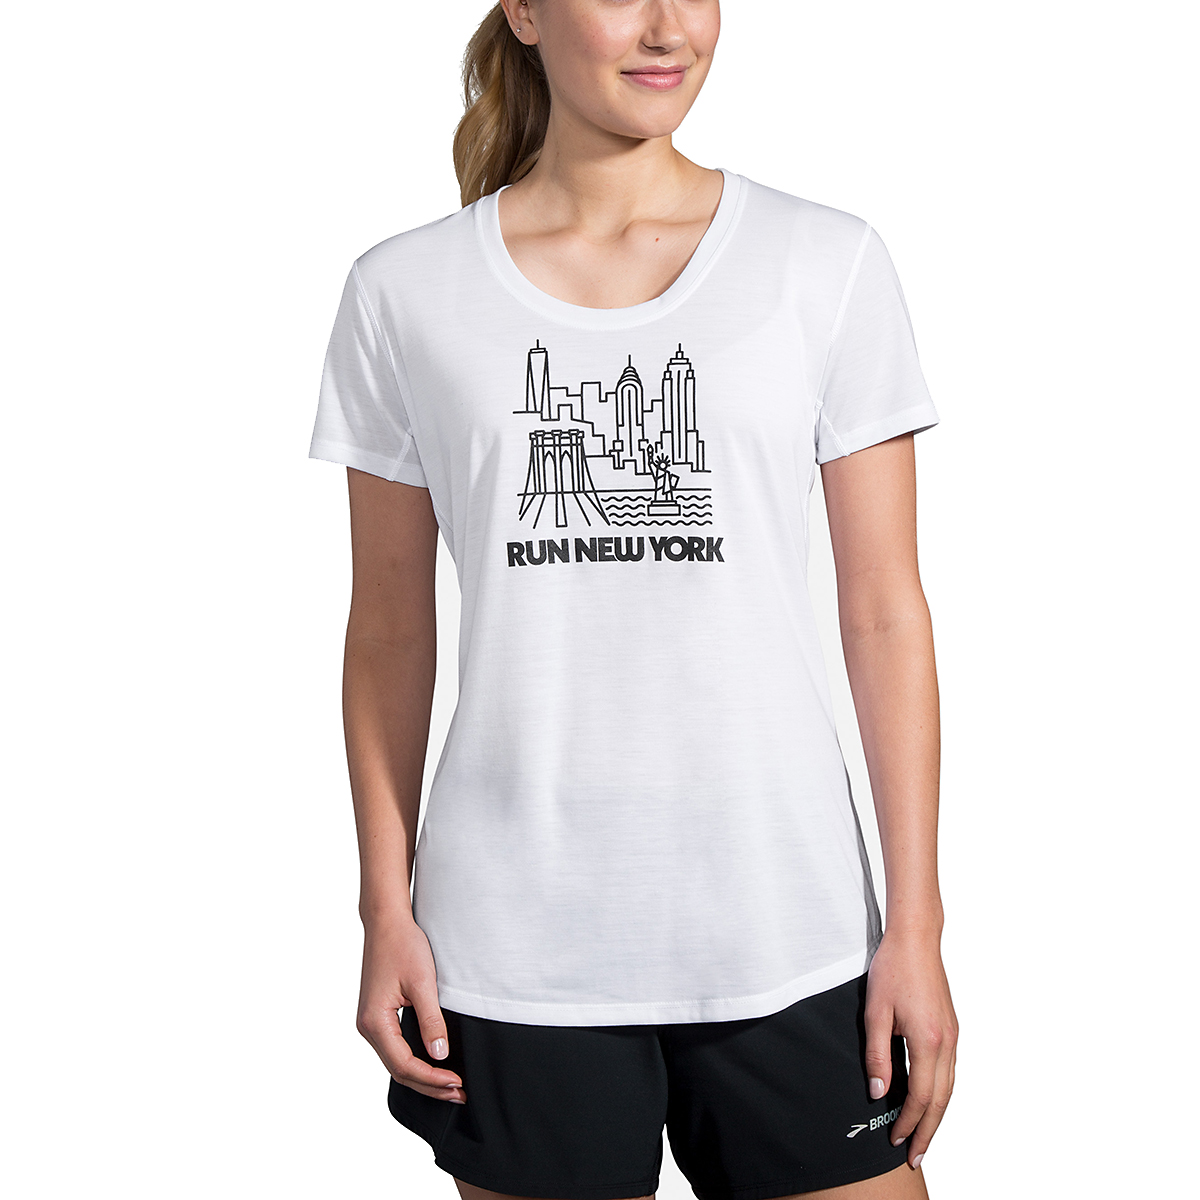 Women's Brooks Distance Graphic Tee - Color: White/Run Nyc - Size: XS, White/Run Nyc, large, image 1